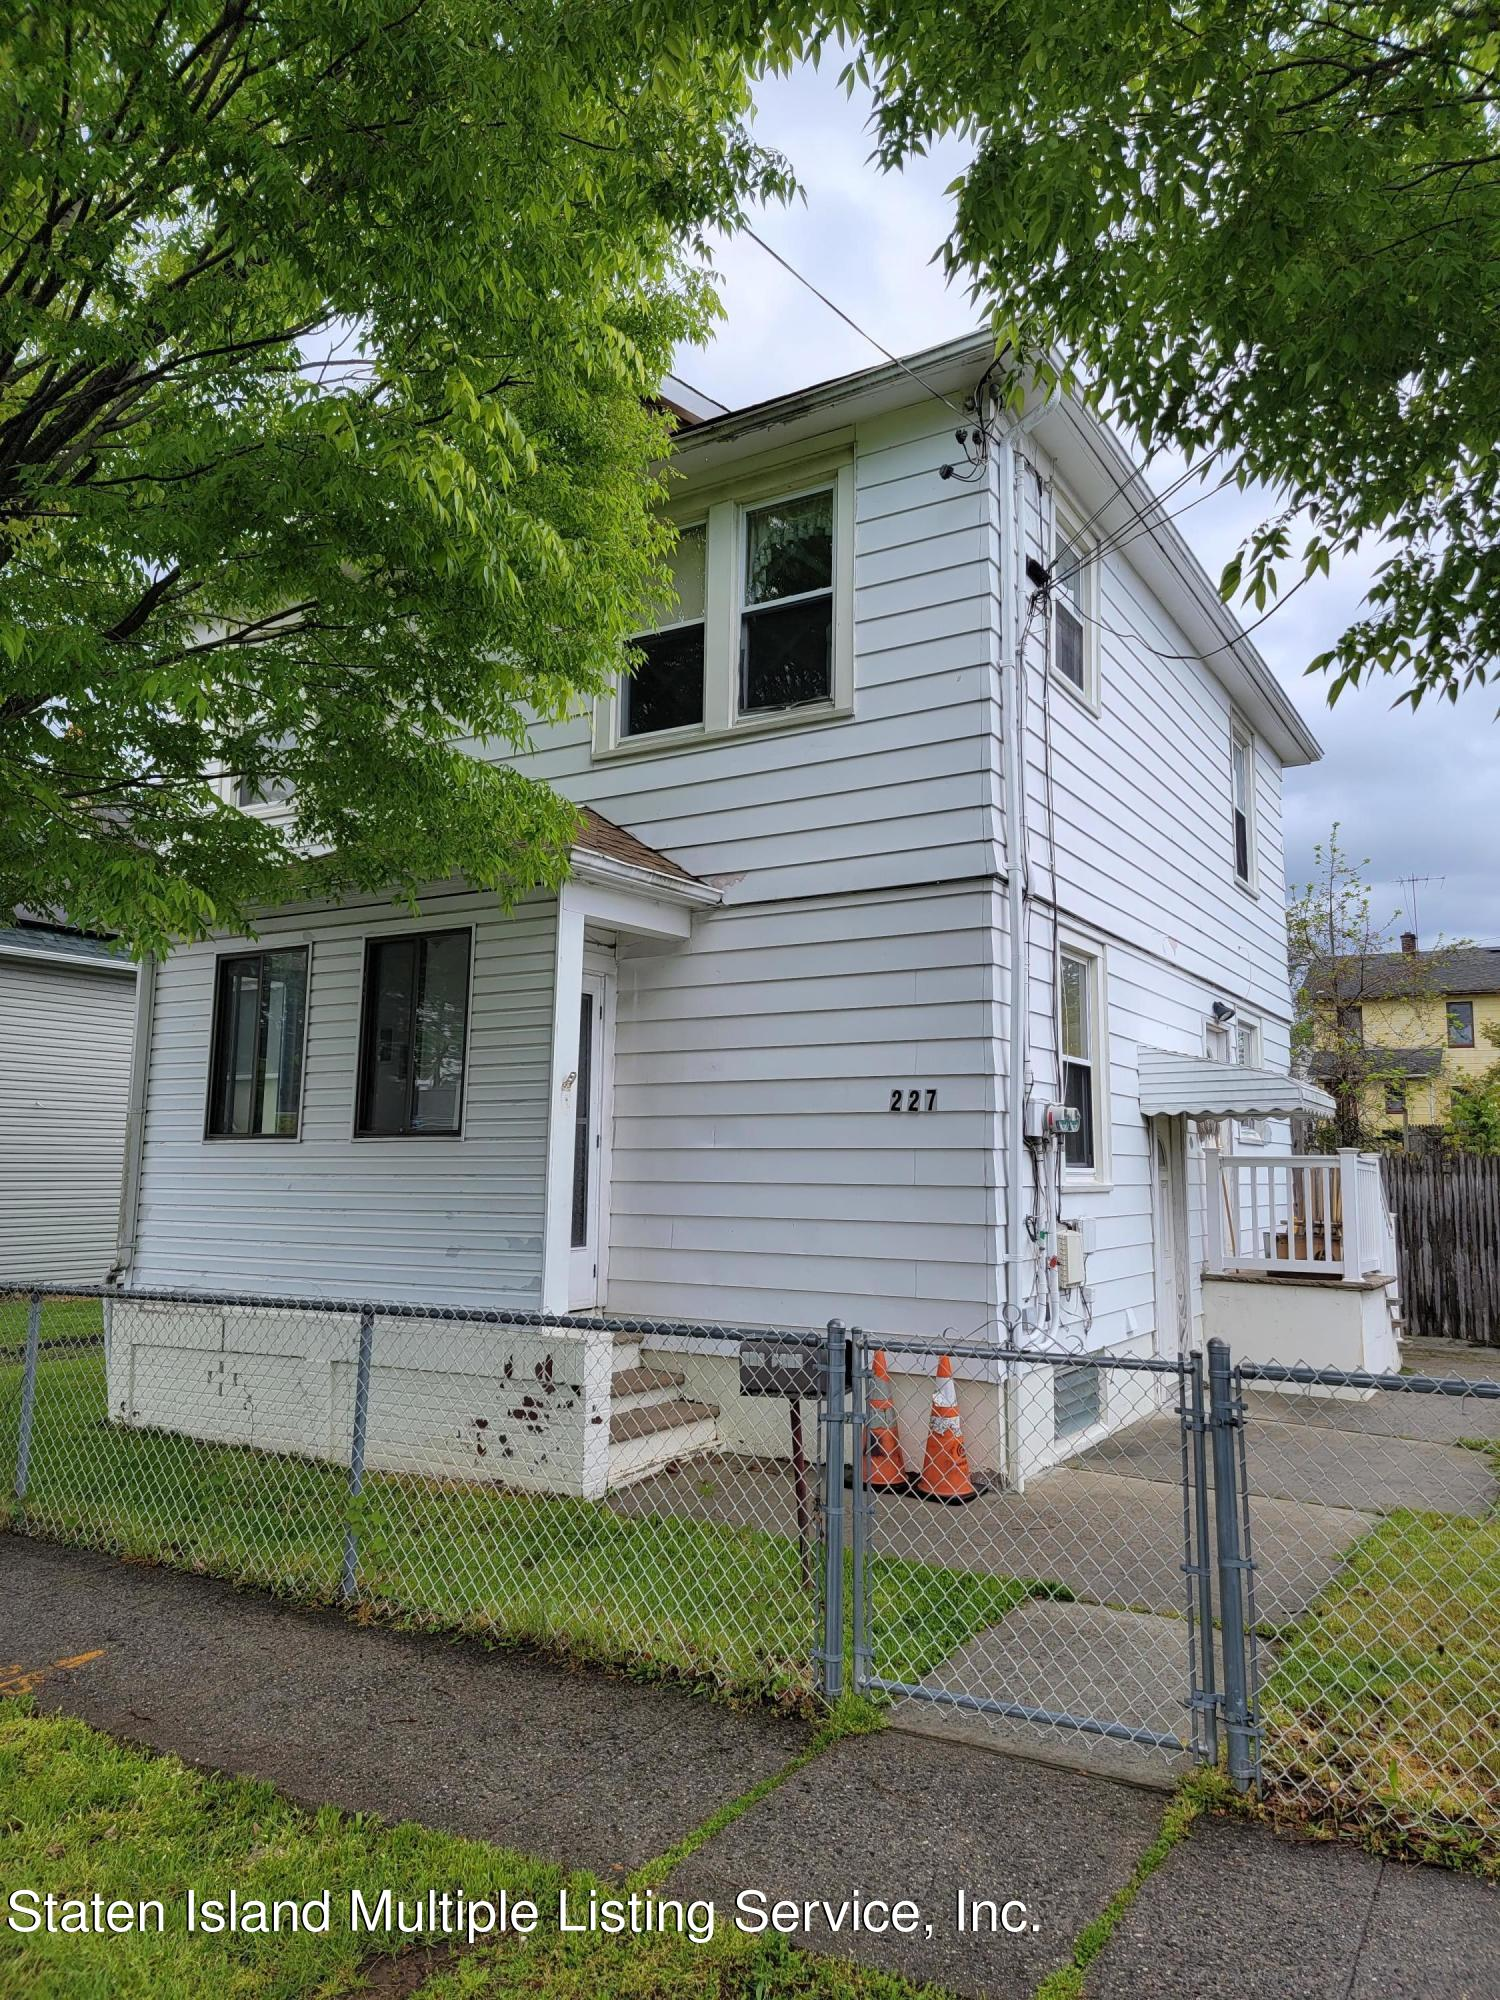 Two Family - Detached 227 Oder Ave   Staten Island, NY 10304, MLS-1146034-2